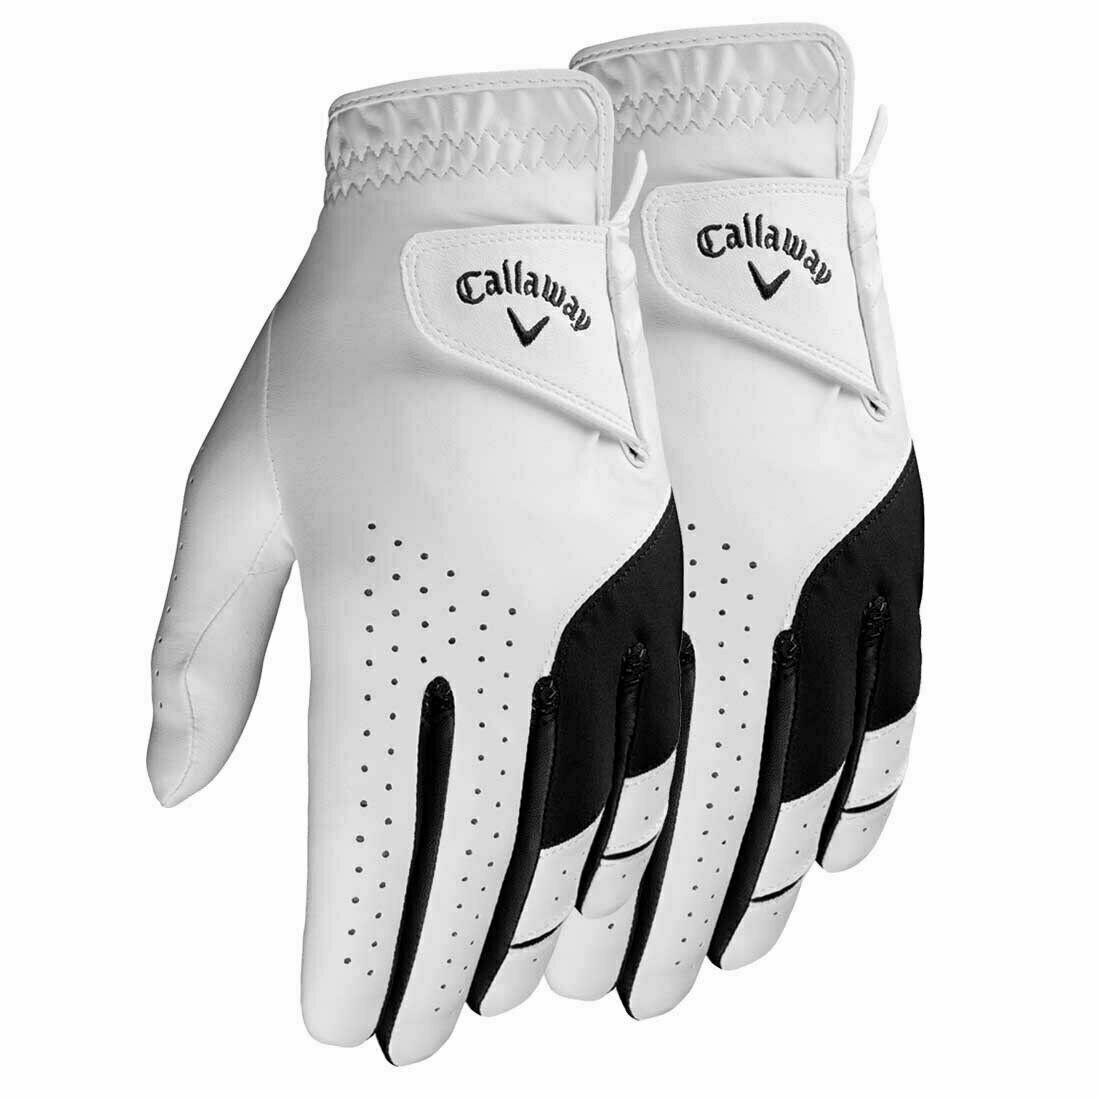 NEW 2021 Callaway 2-Pack Weather Spann Men's Golf Gloves **2-3 Day Free Ship**